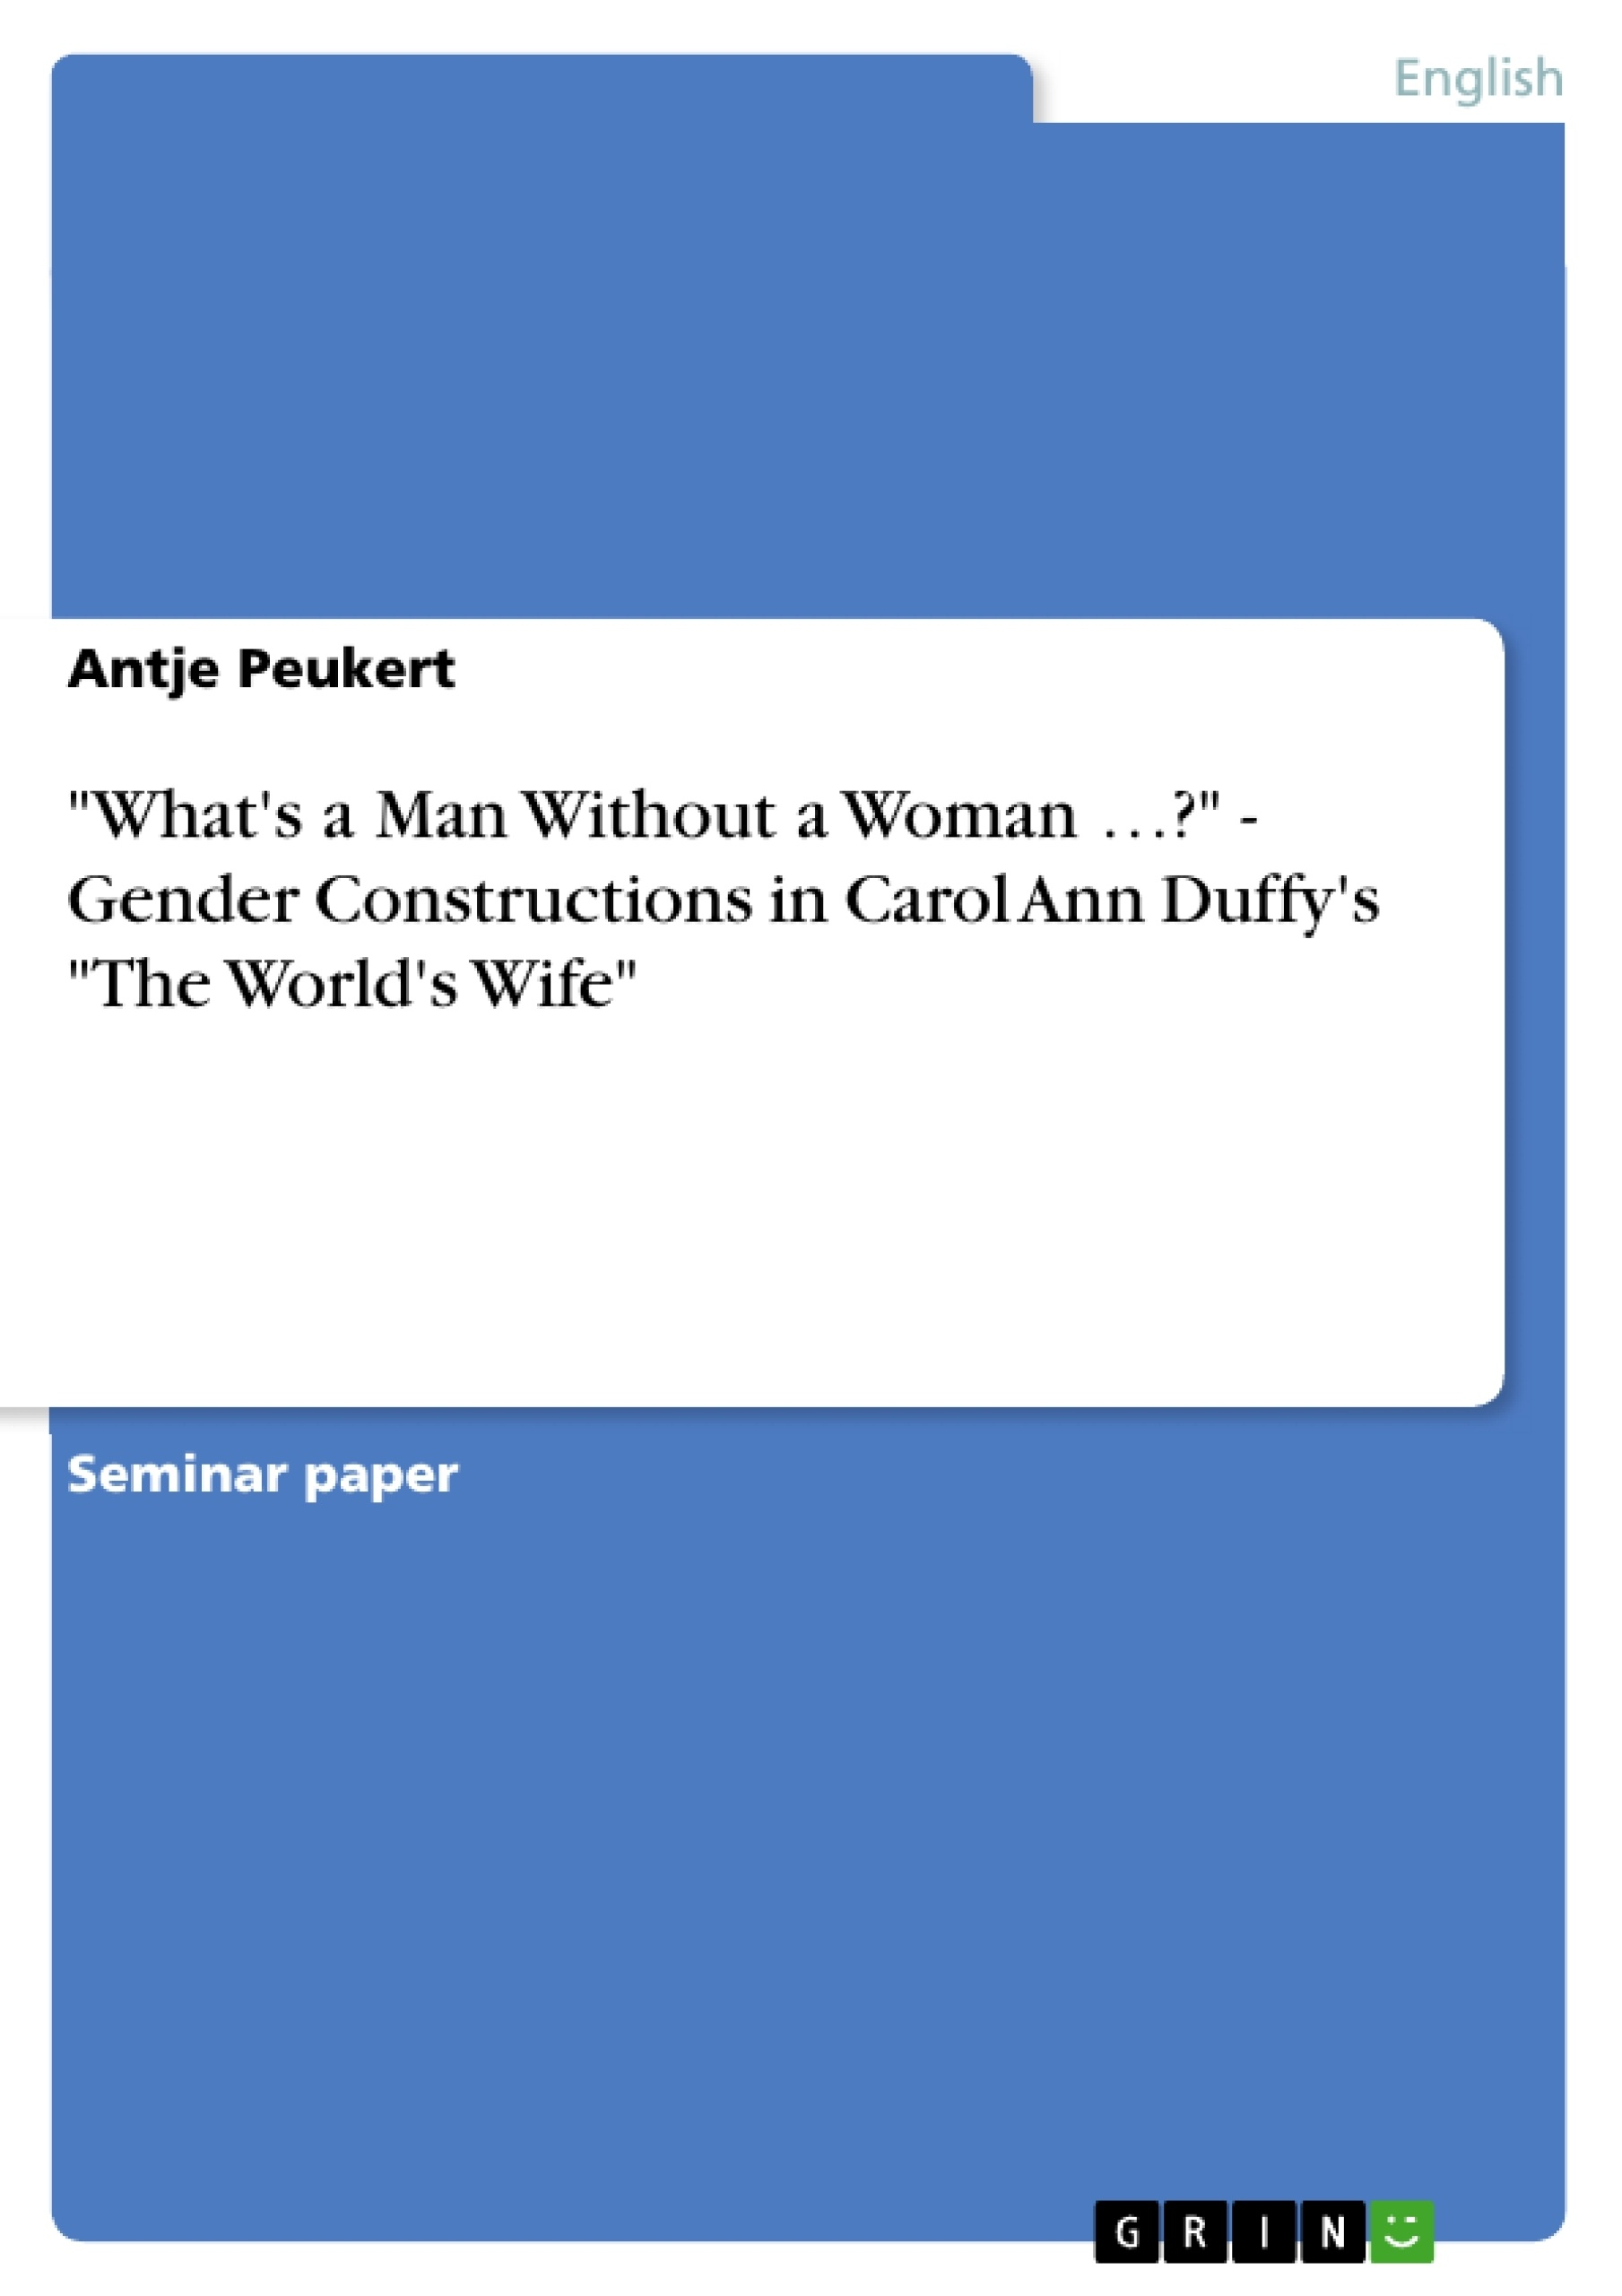 """Title: """"What's a Man Without a Woman …?"""" - Gender Constructions in Carol Ann Duffy's """"The World's Wife"""""""